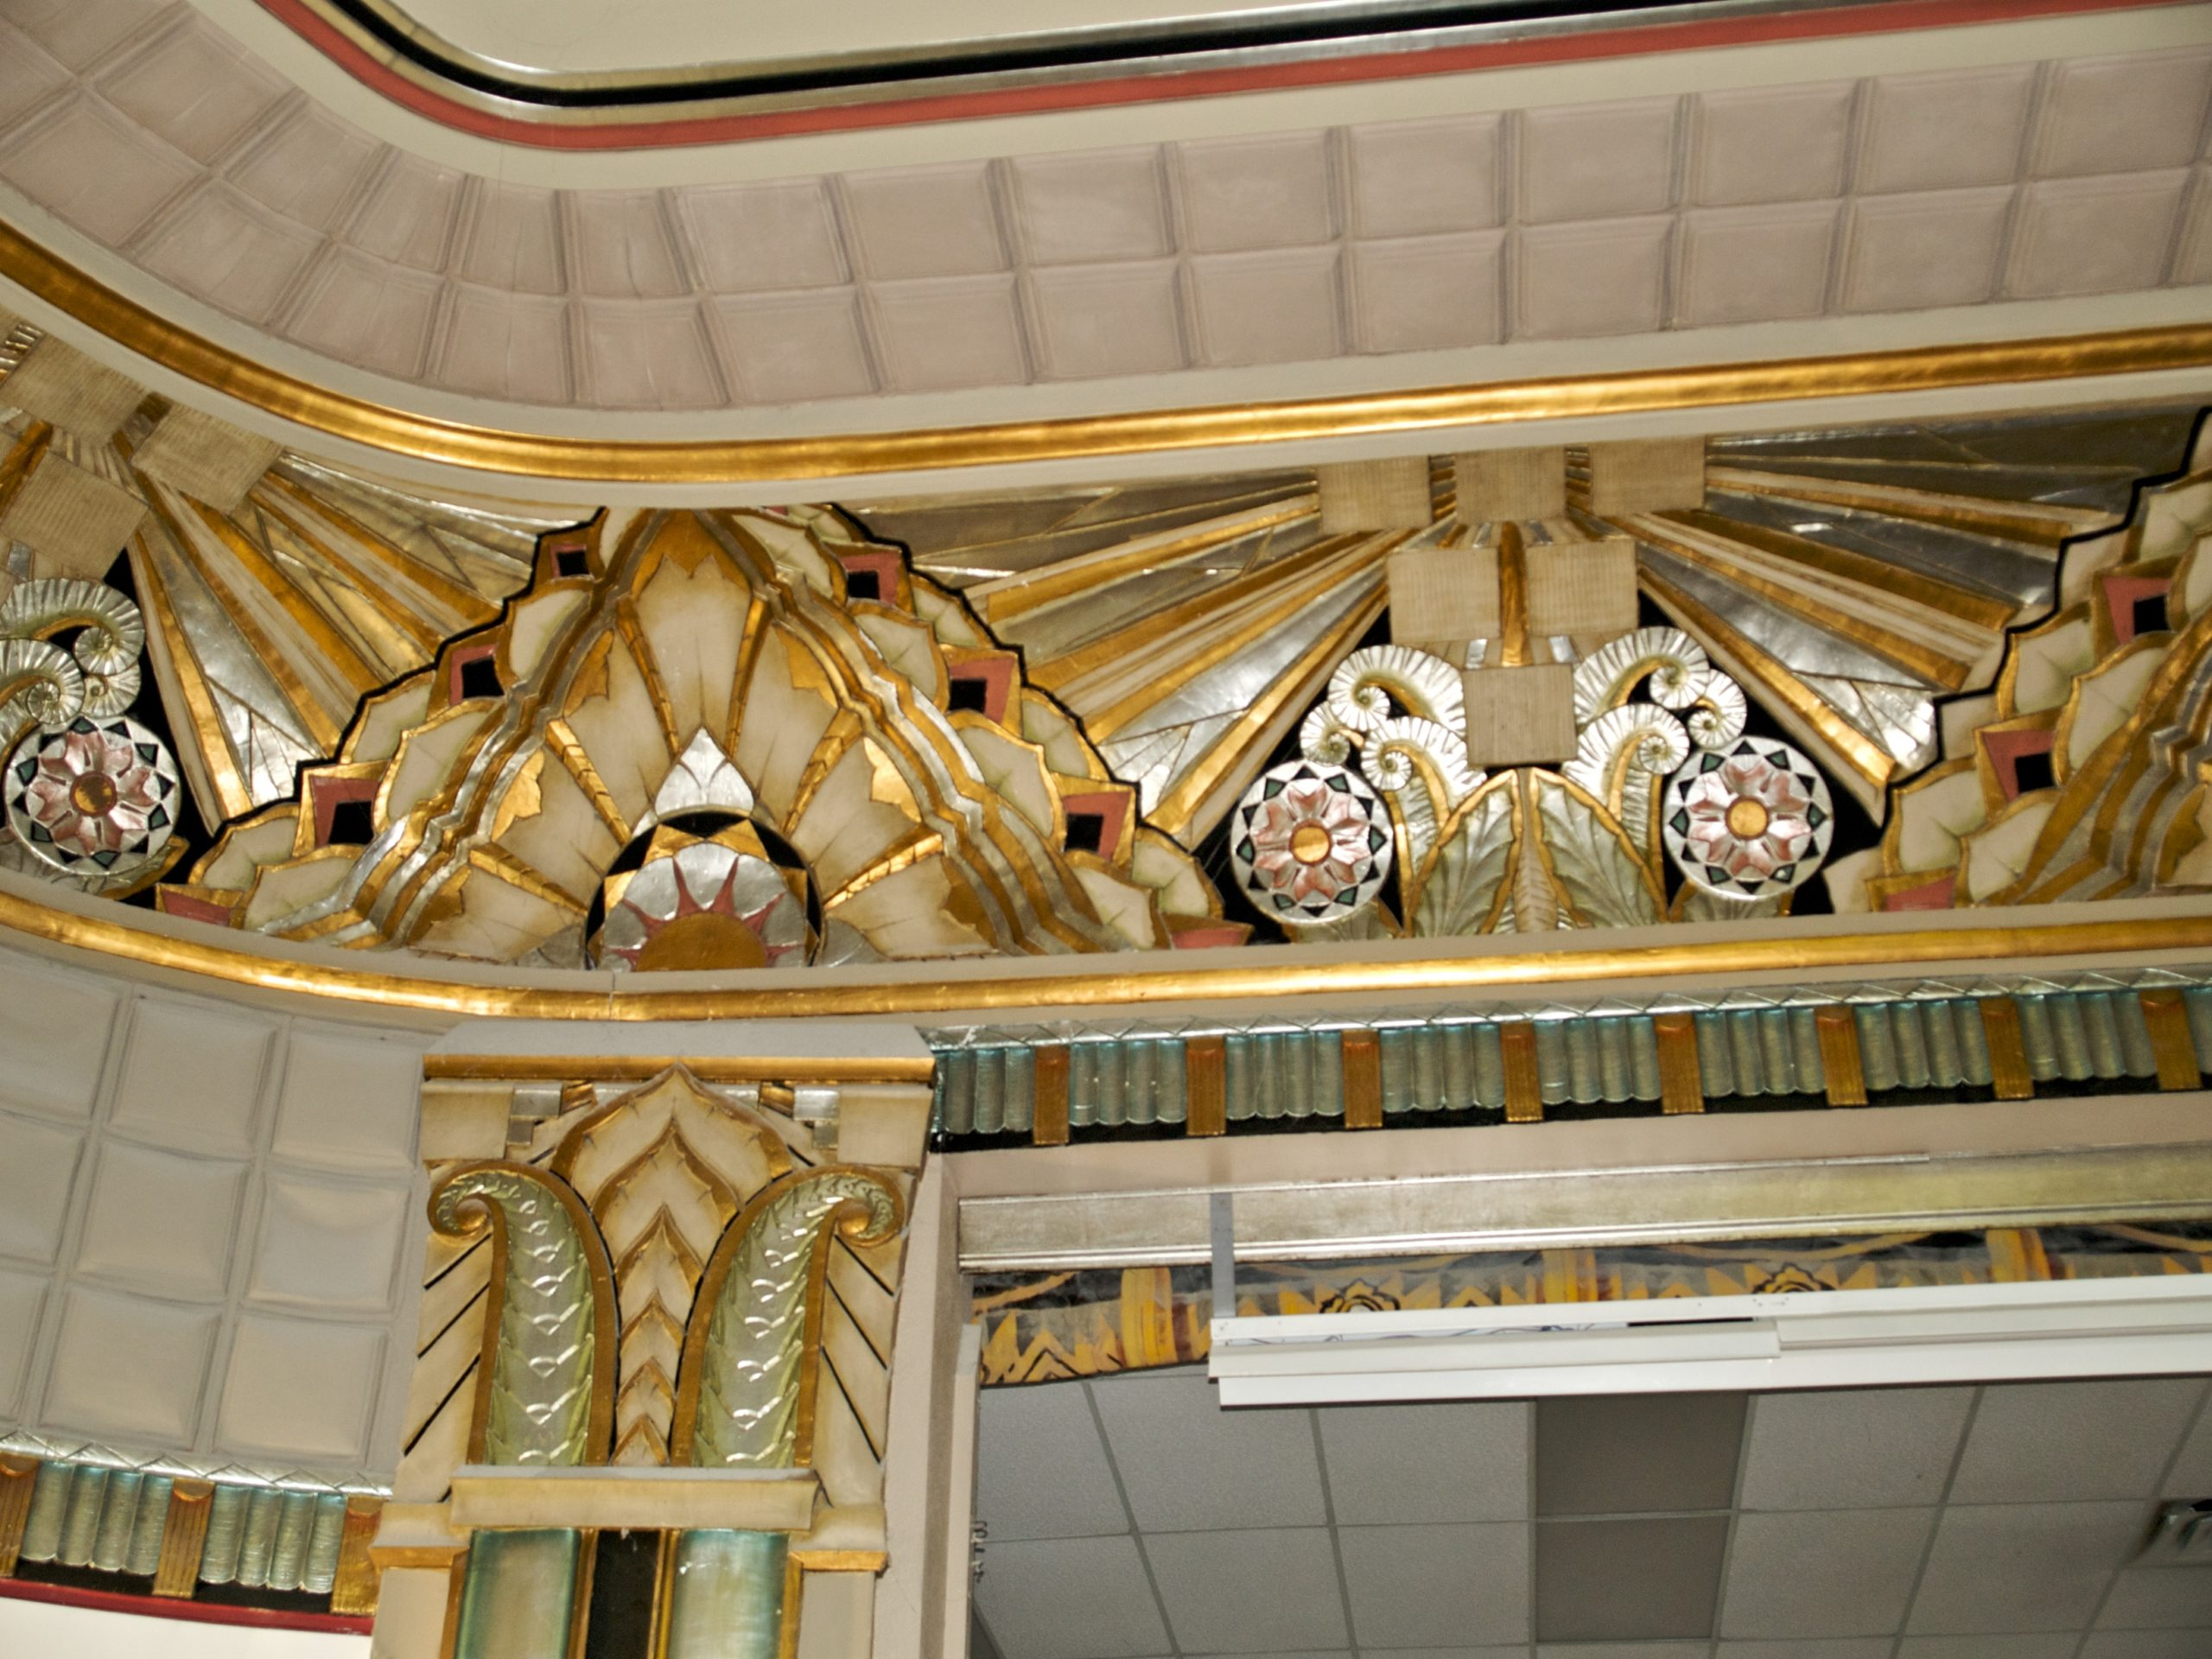 Ornate gold and silver leaf decorations in the ceiling of a building.